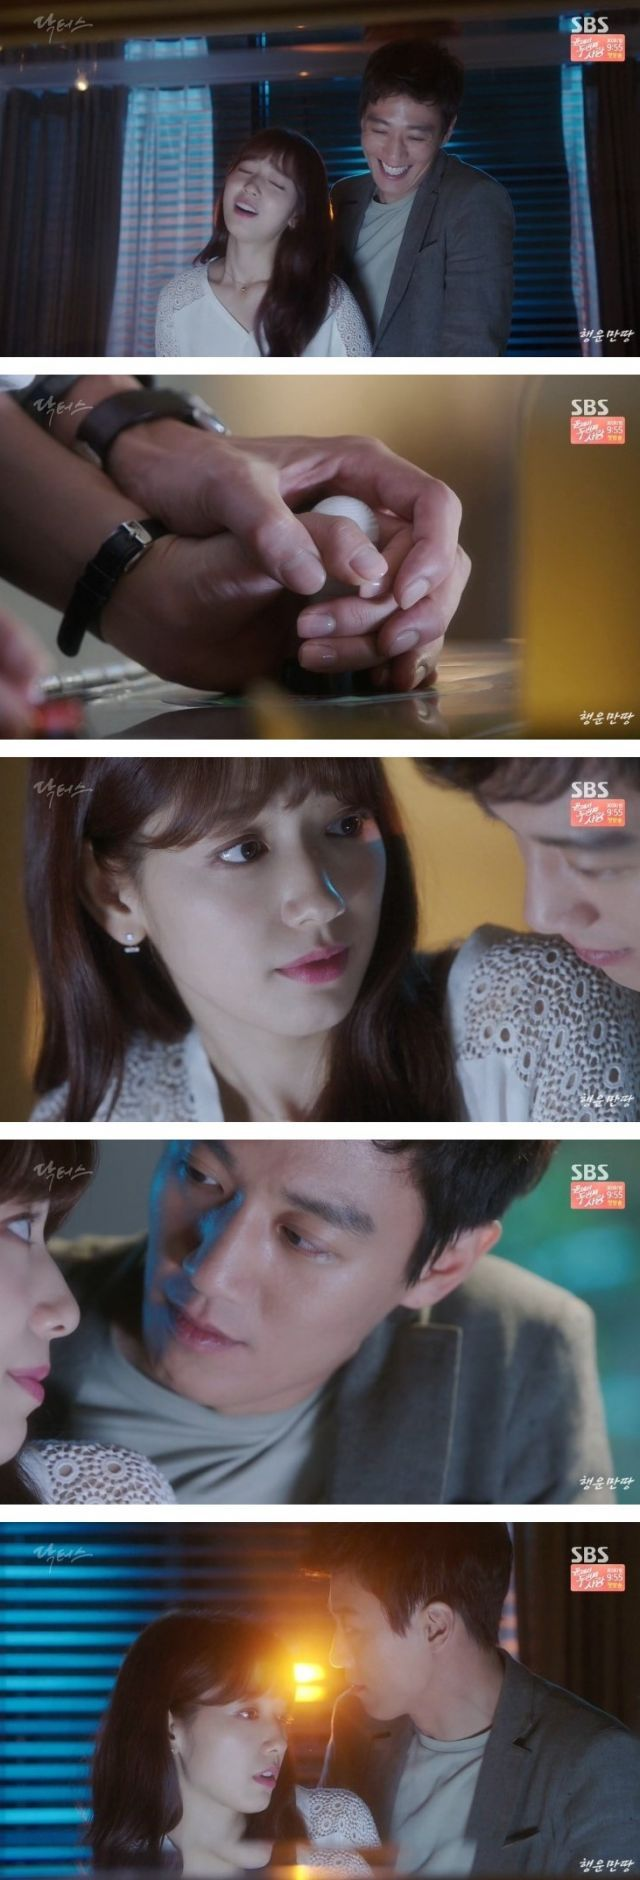 [Spoiler] Added episode 12 captures for the #kdrama 'Doctors'